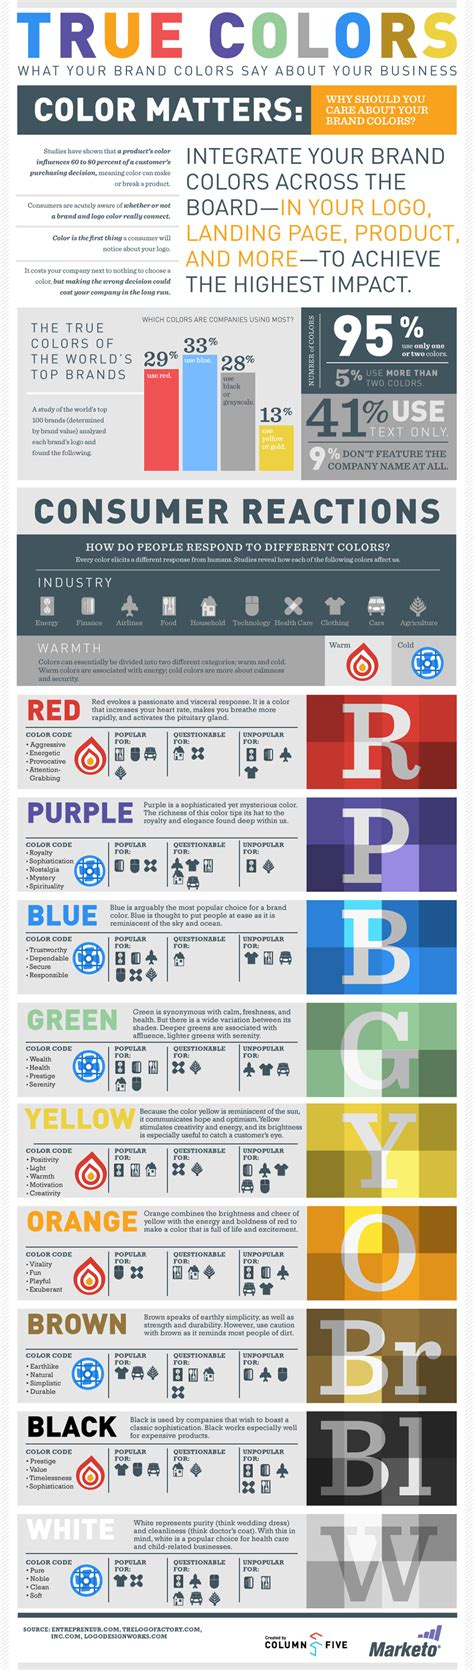 true colors what your brand colors say about your business